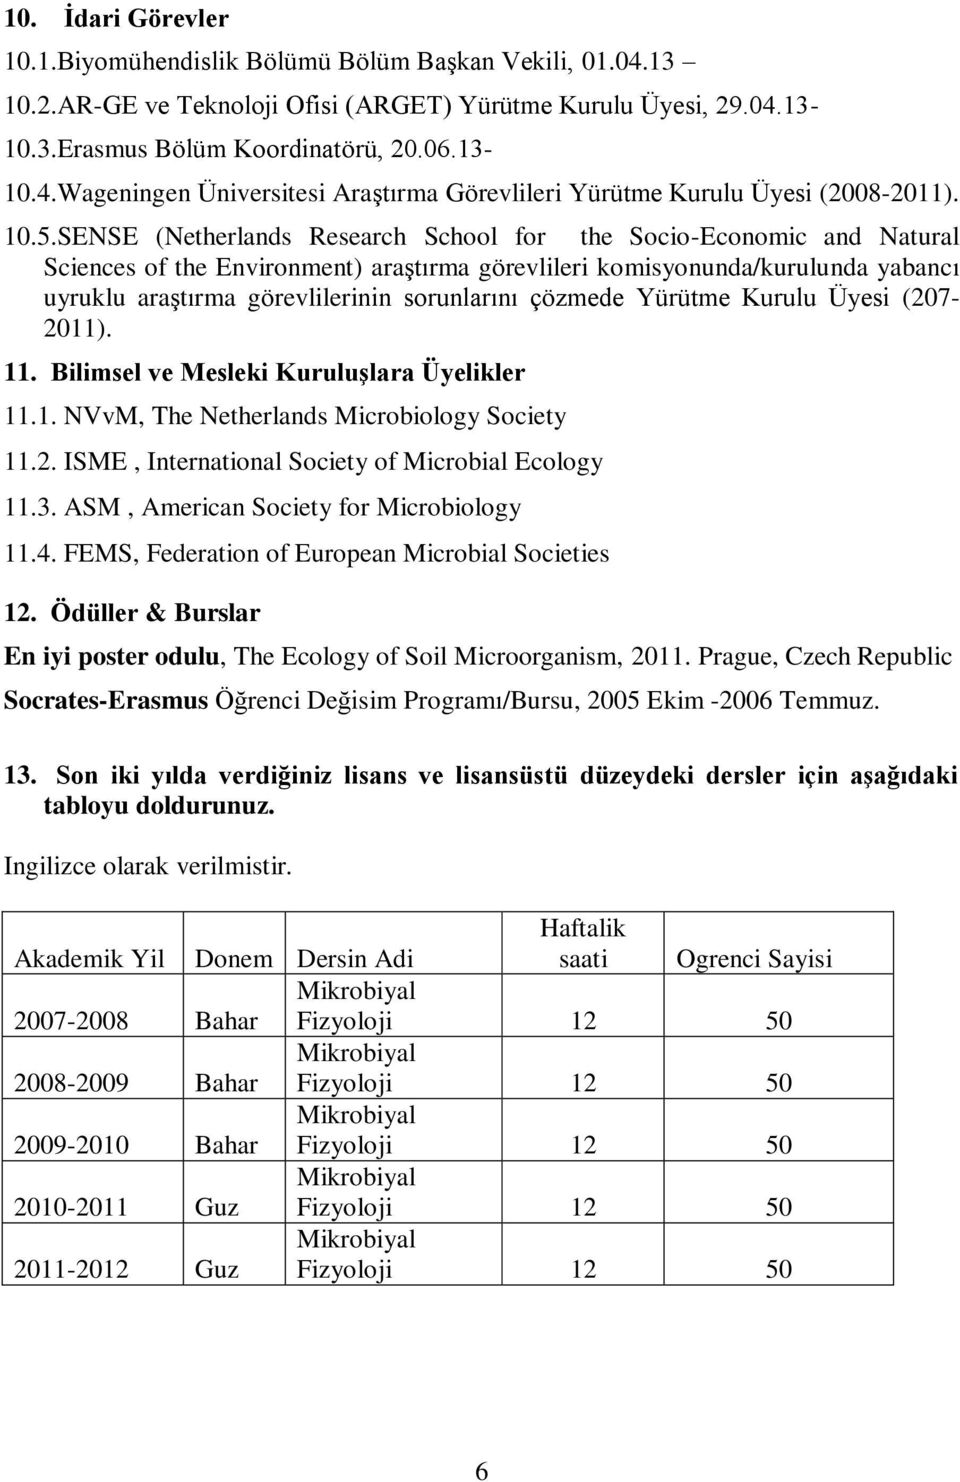 sorunlarını çözmede Yürütme Kurulu Üyesi (207-2011). 11. Bilimsel ve Mesleki Kuruluşlara Üyelikler 11.1. NVvM, The Netherlands Microbiology Society 11.2. ISME, International Society of Microbial Ecology 11.